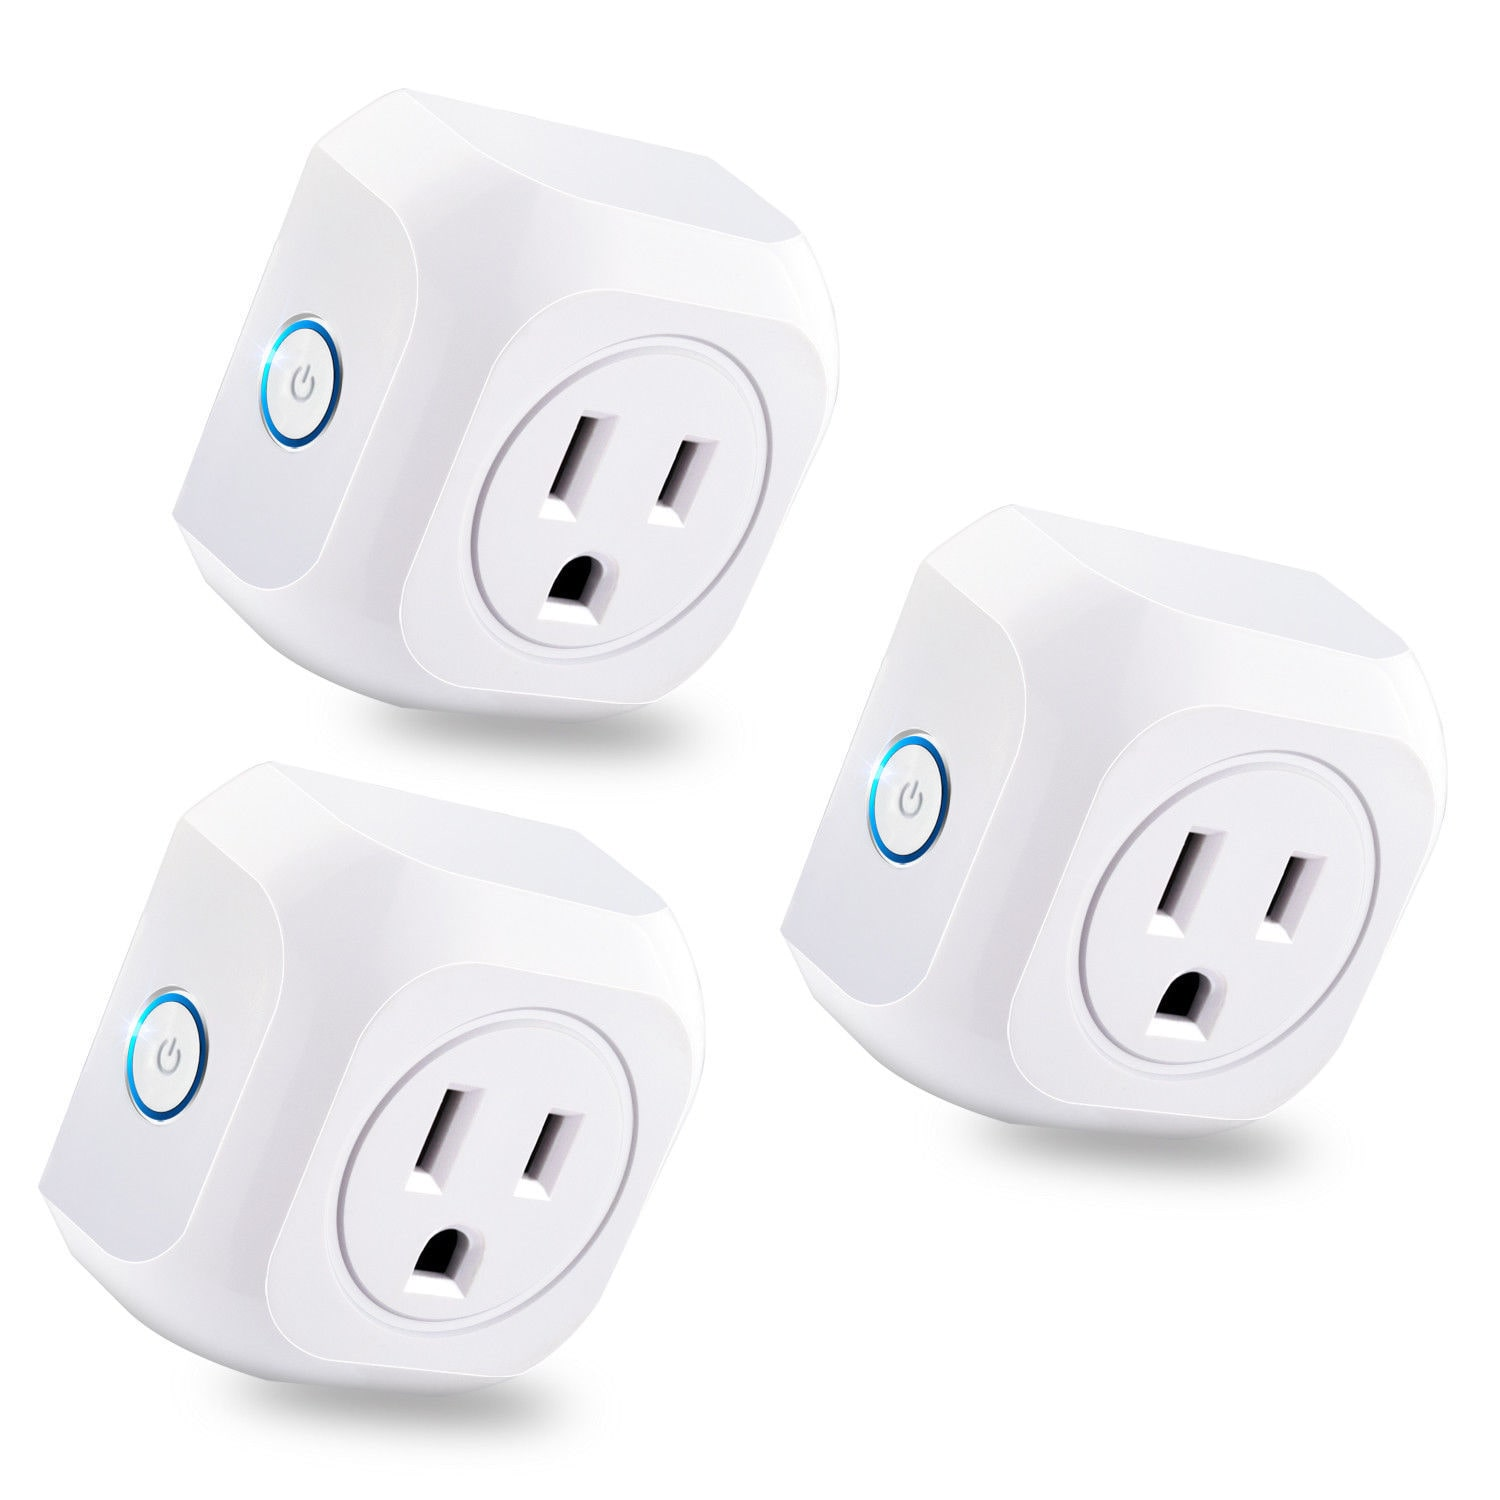 https://assetscdn1.paytm.com/images/catalog/product/H/HO/HOM3-PACK-WIFI-STEL1153764DF4B5BB9/3..JPEG